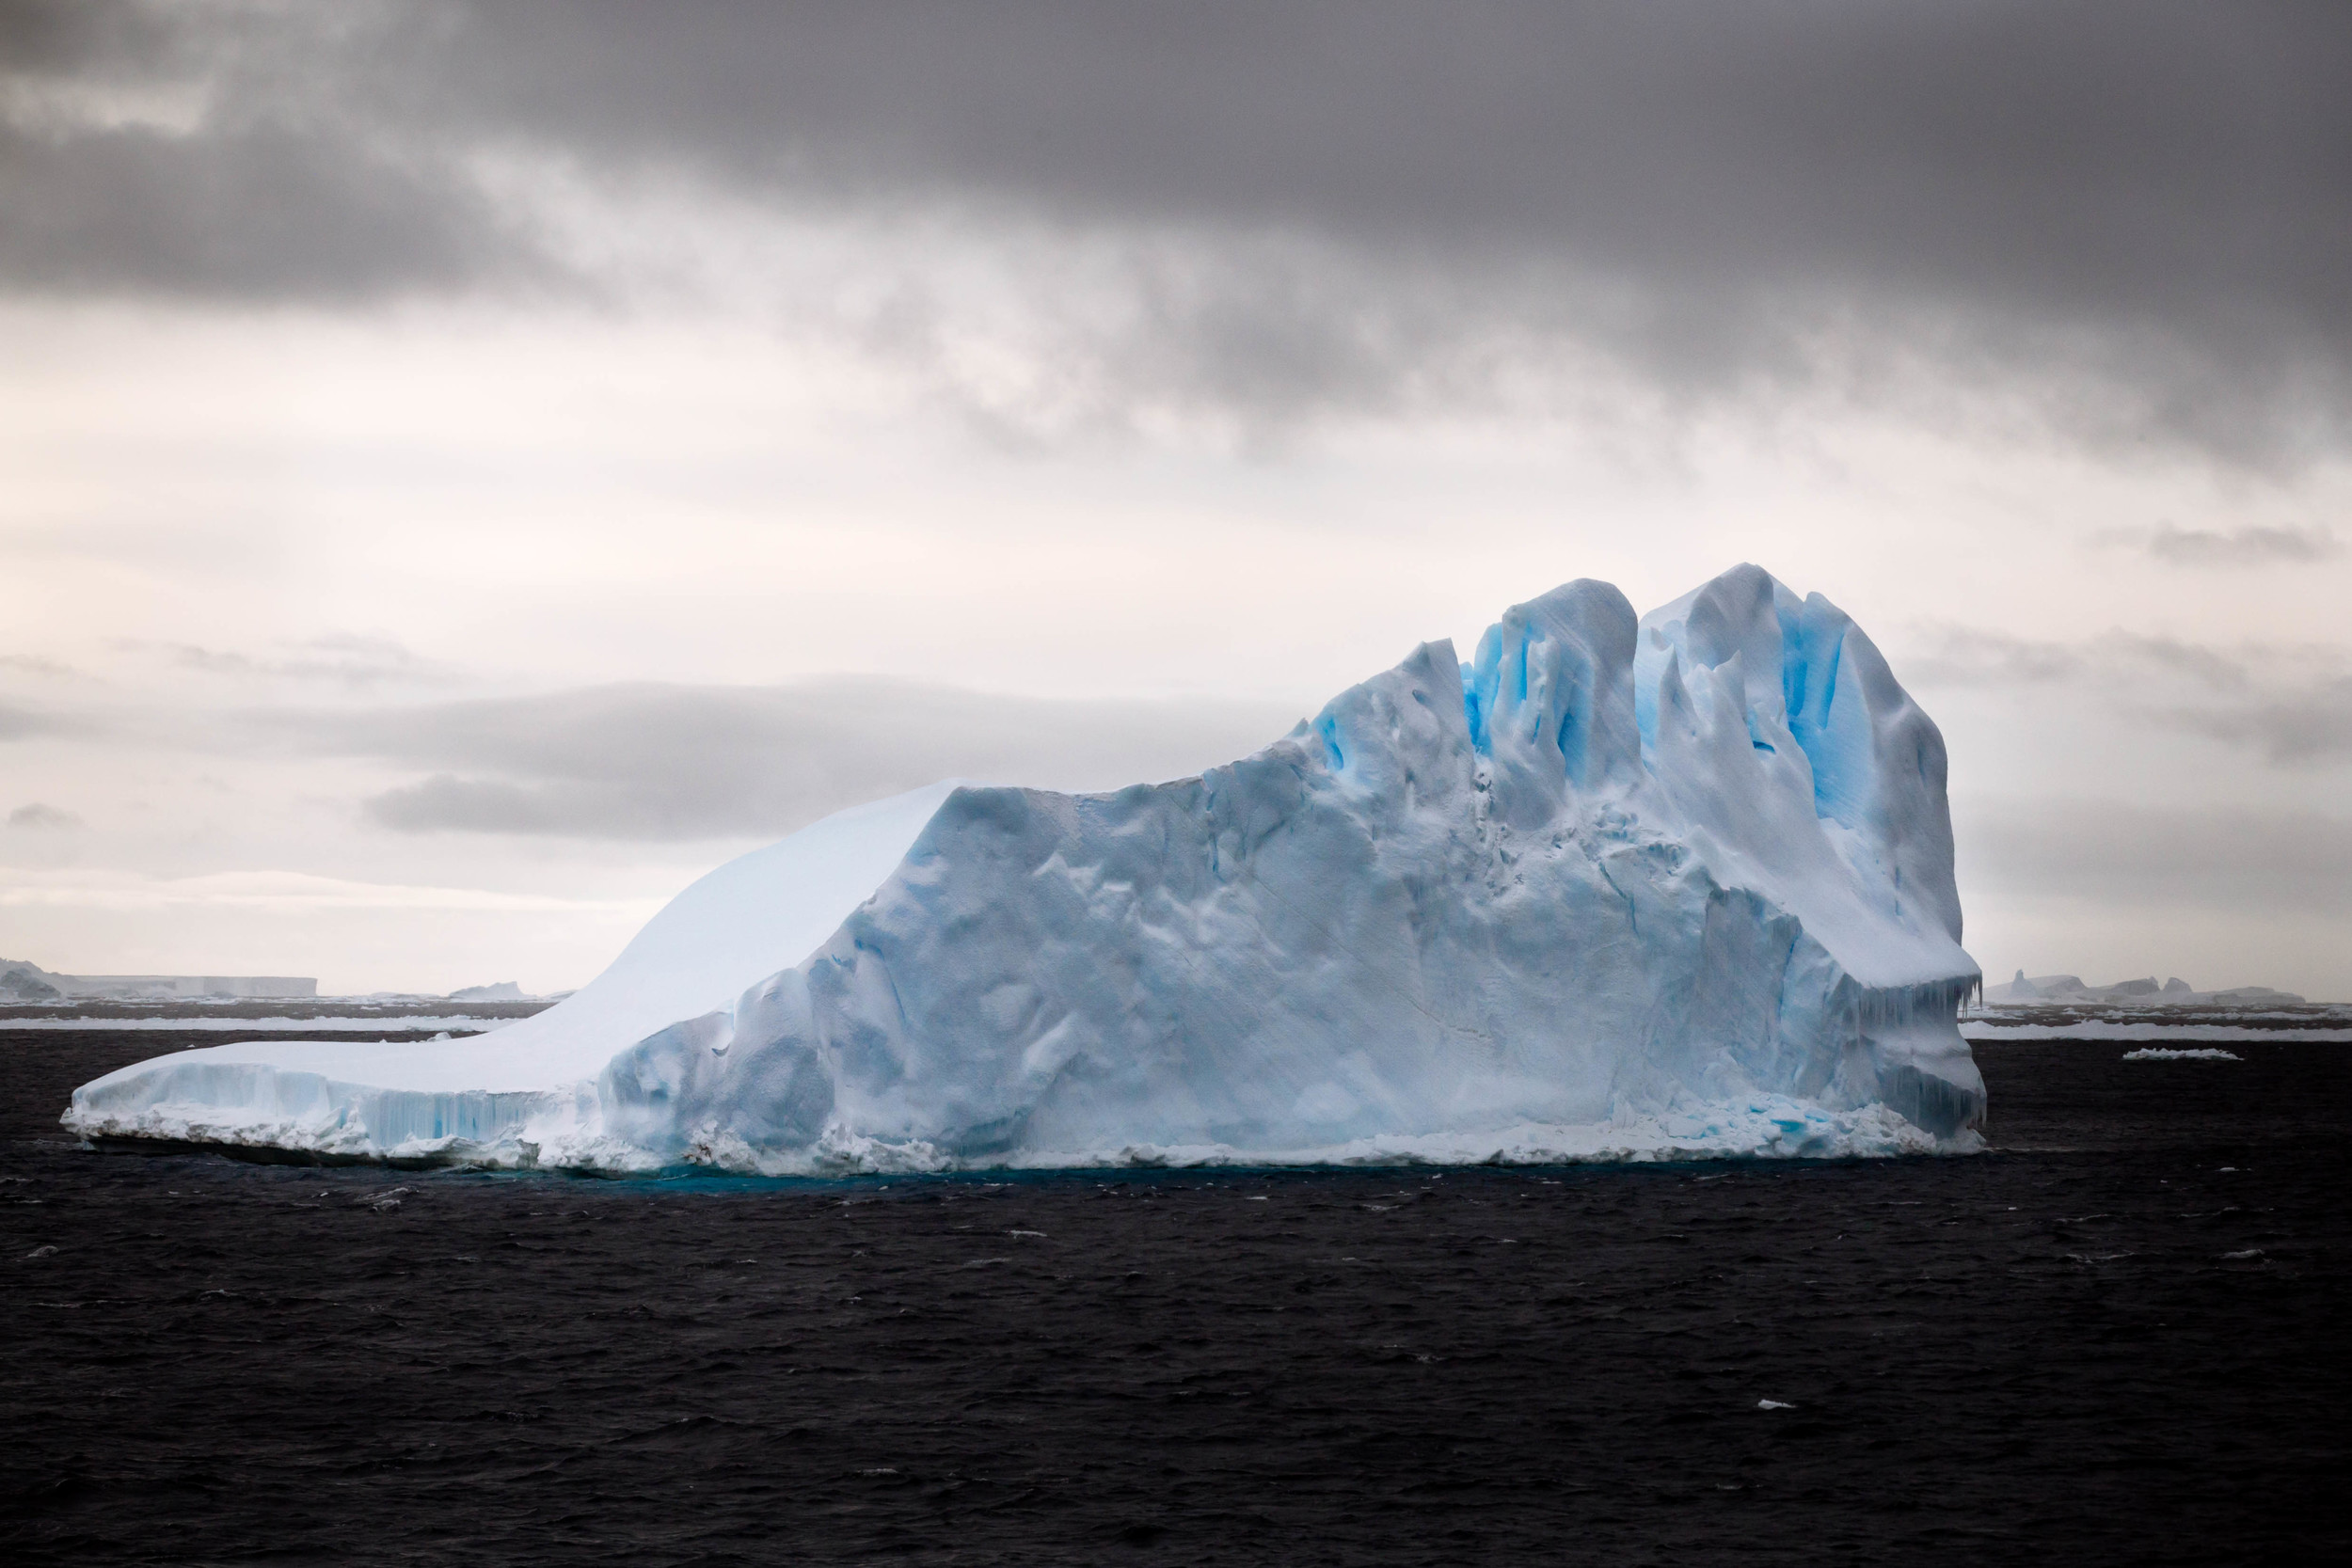 As we approached Antarctica, the icebergs grew larger, revealing their signature blue hues.